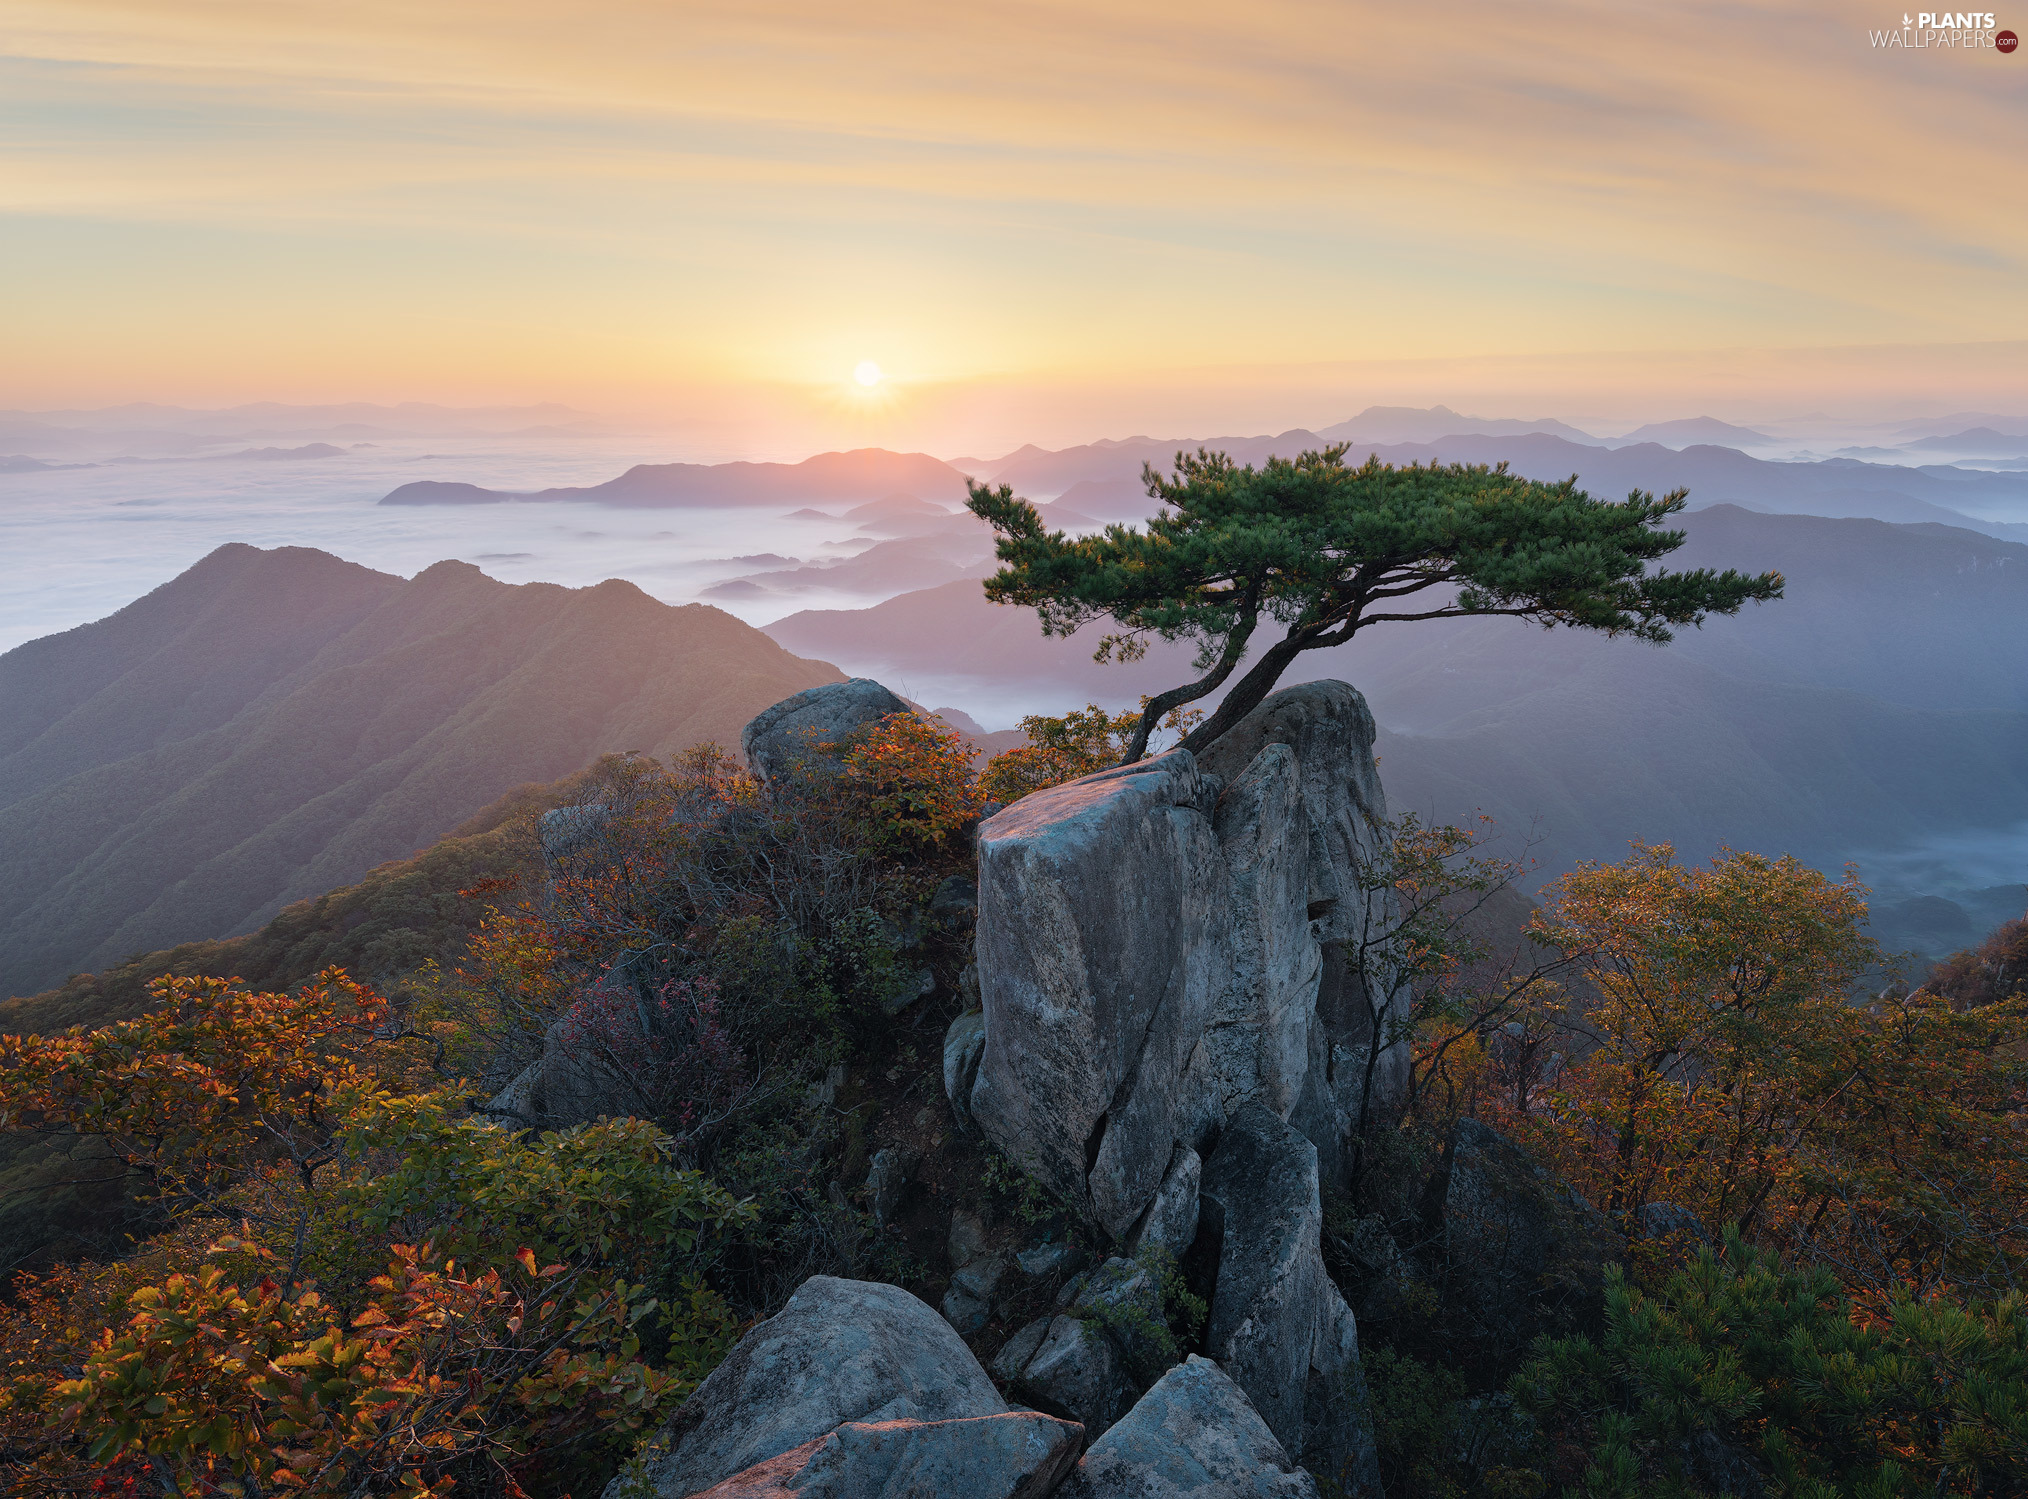 Sunrise, Daedunsan Provincial Park, trees, viewes, North Jeolla Province, South Korea, Mountains, Fog, pine